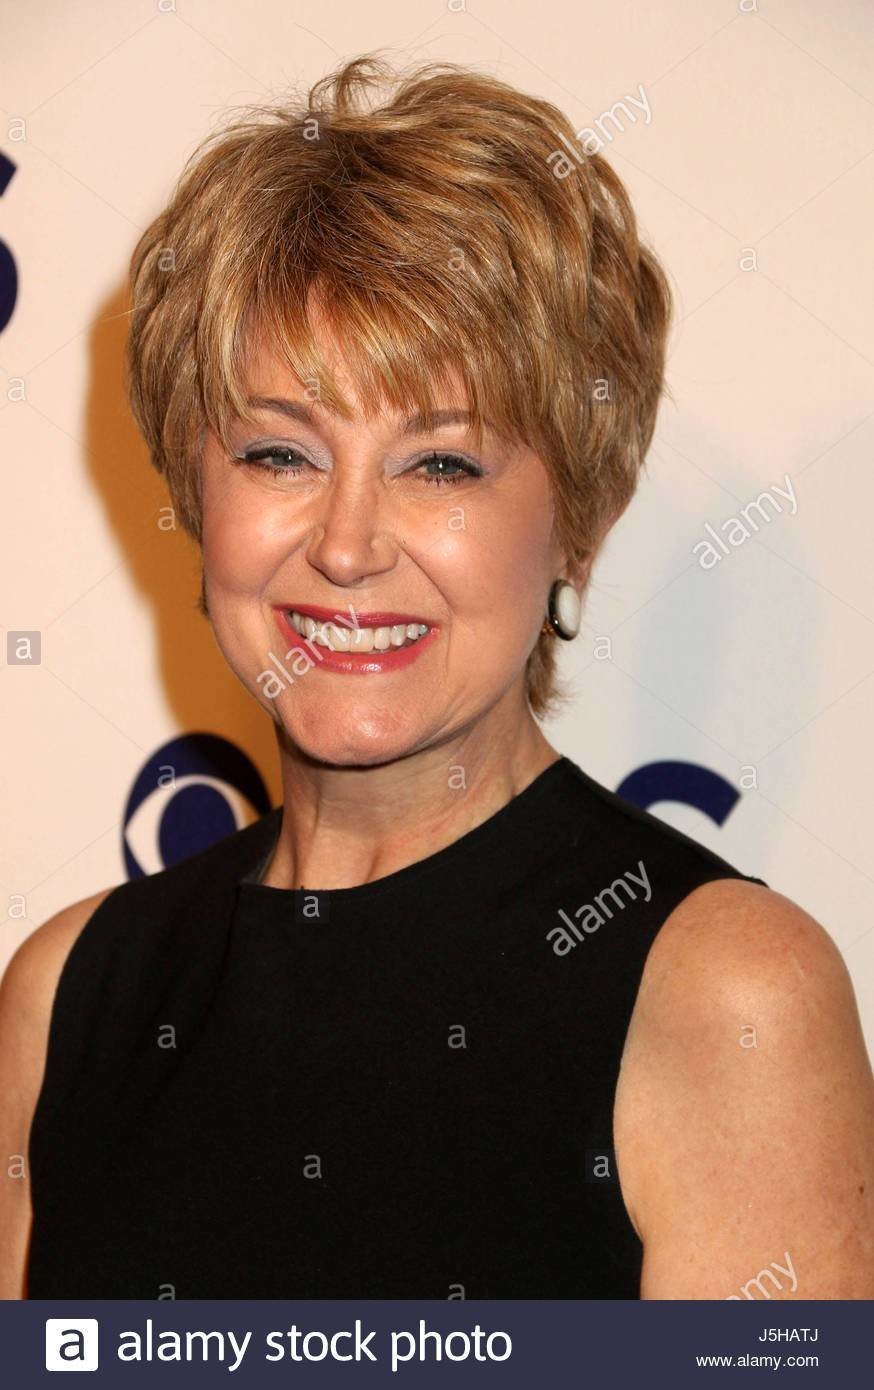 New Jane Pauley Haircut Jane Pauley Pinterest New York New York Usa 17Th May 2017 News Personality Ideas With Pictures